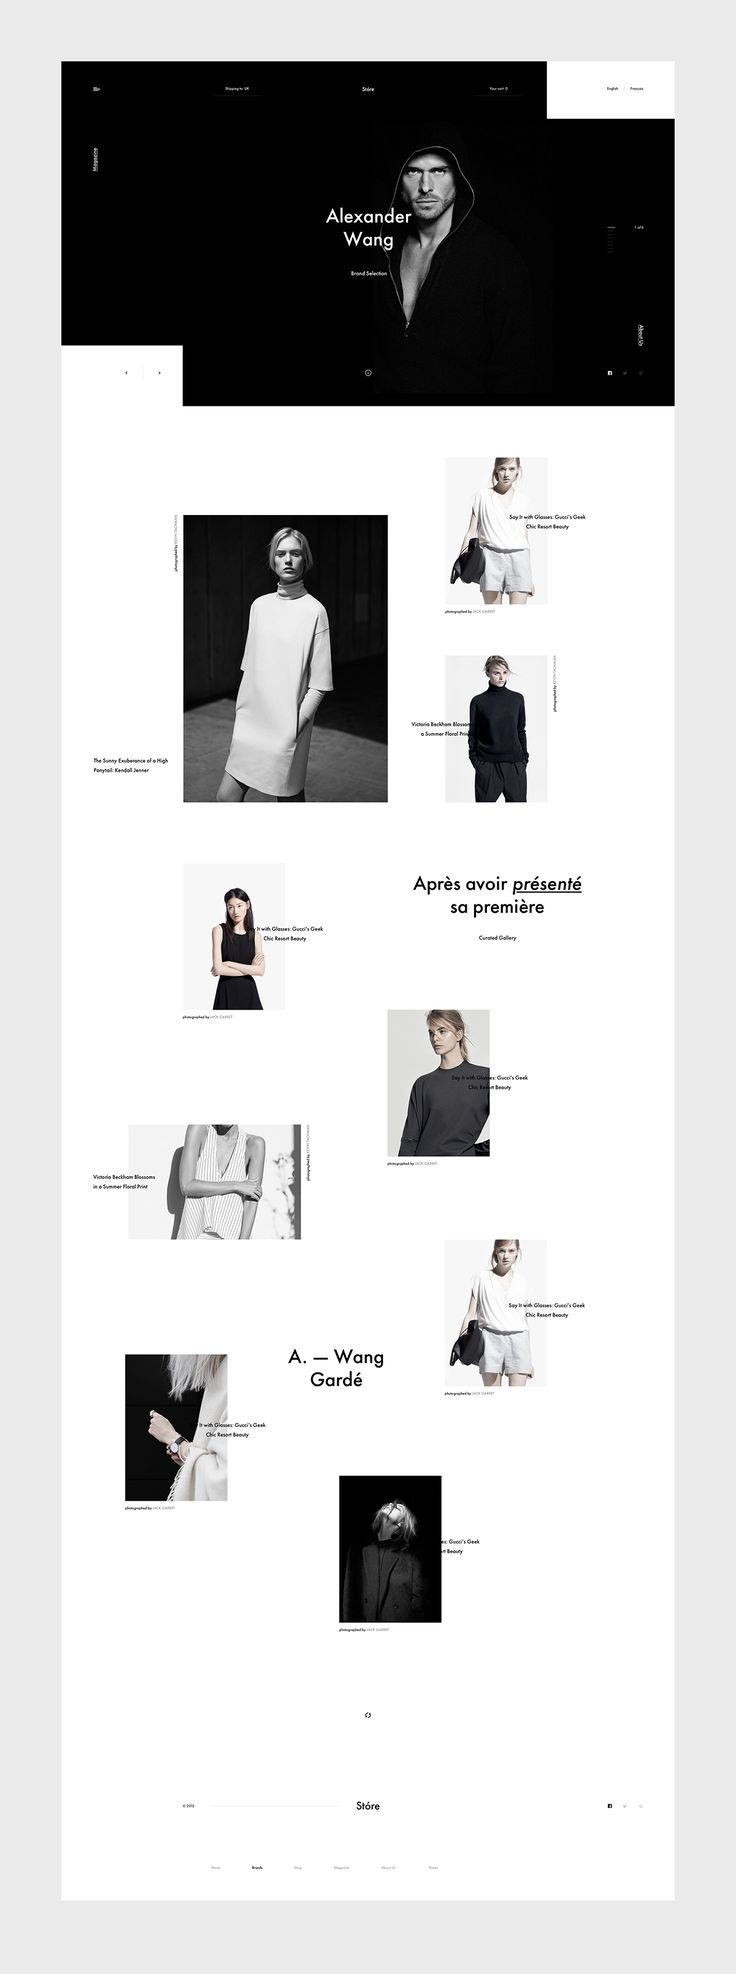 Stóre is a new online fashion shop and editorial magazine from Denmark offering a highly selective premium quality brand clothes.